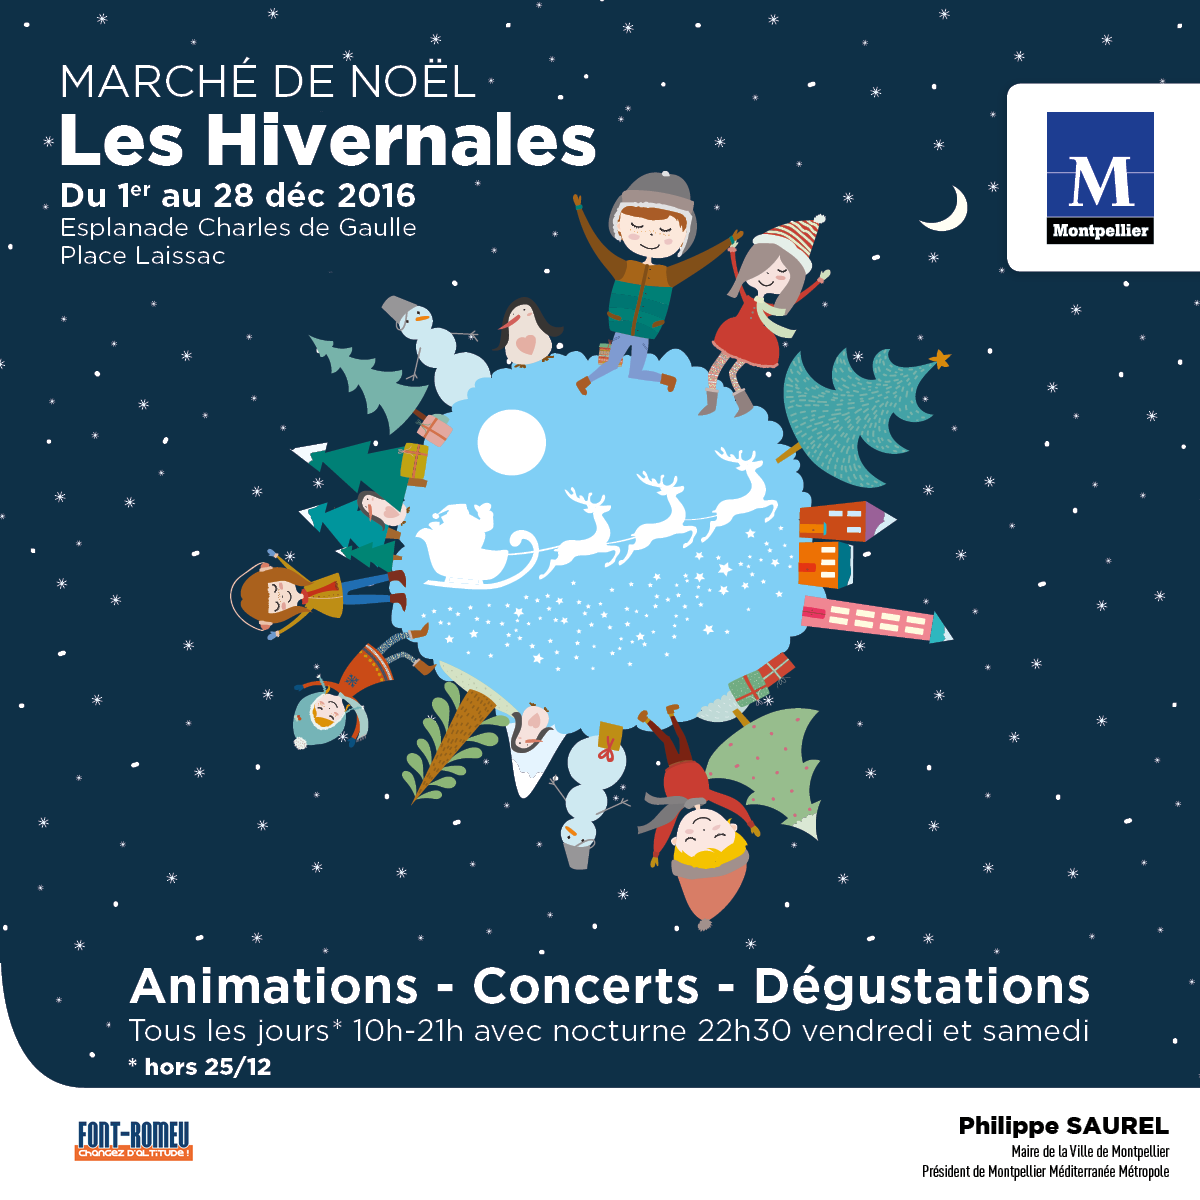 hivernales 2016